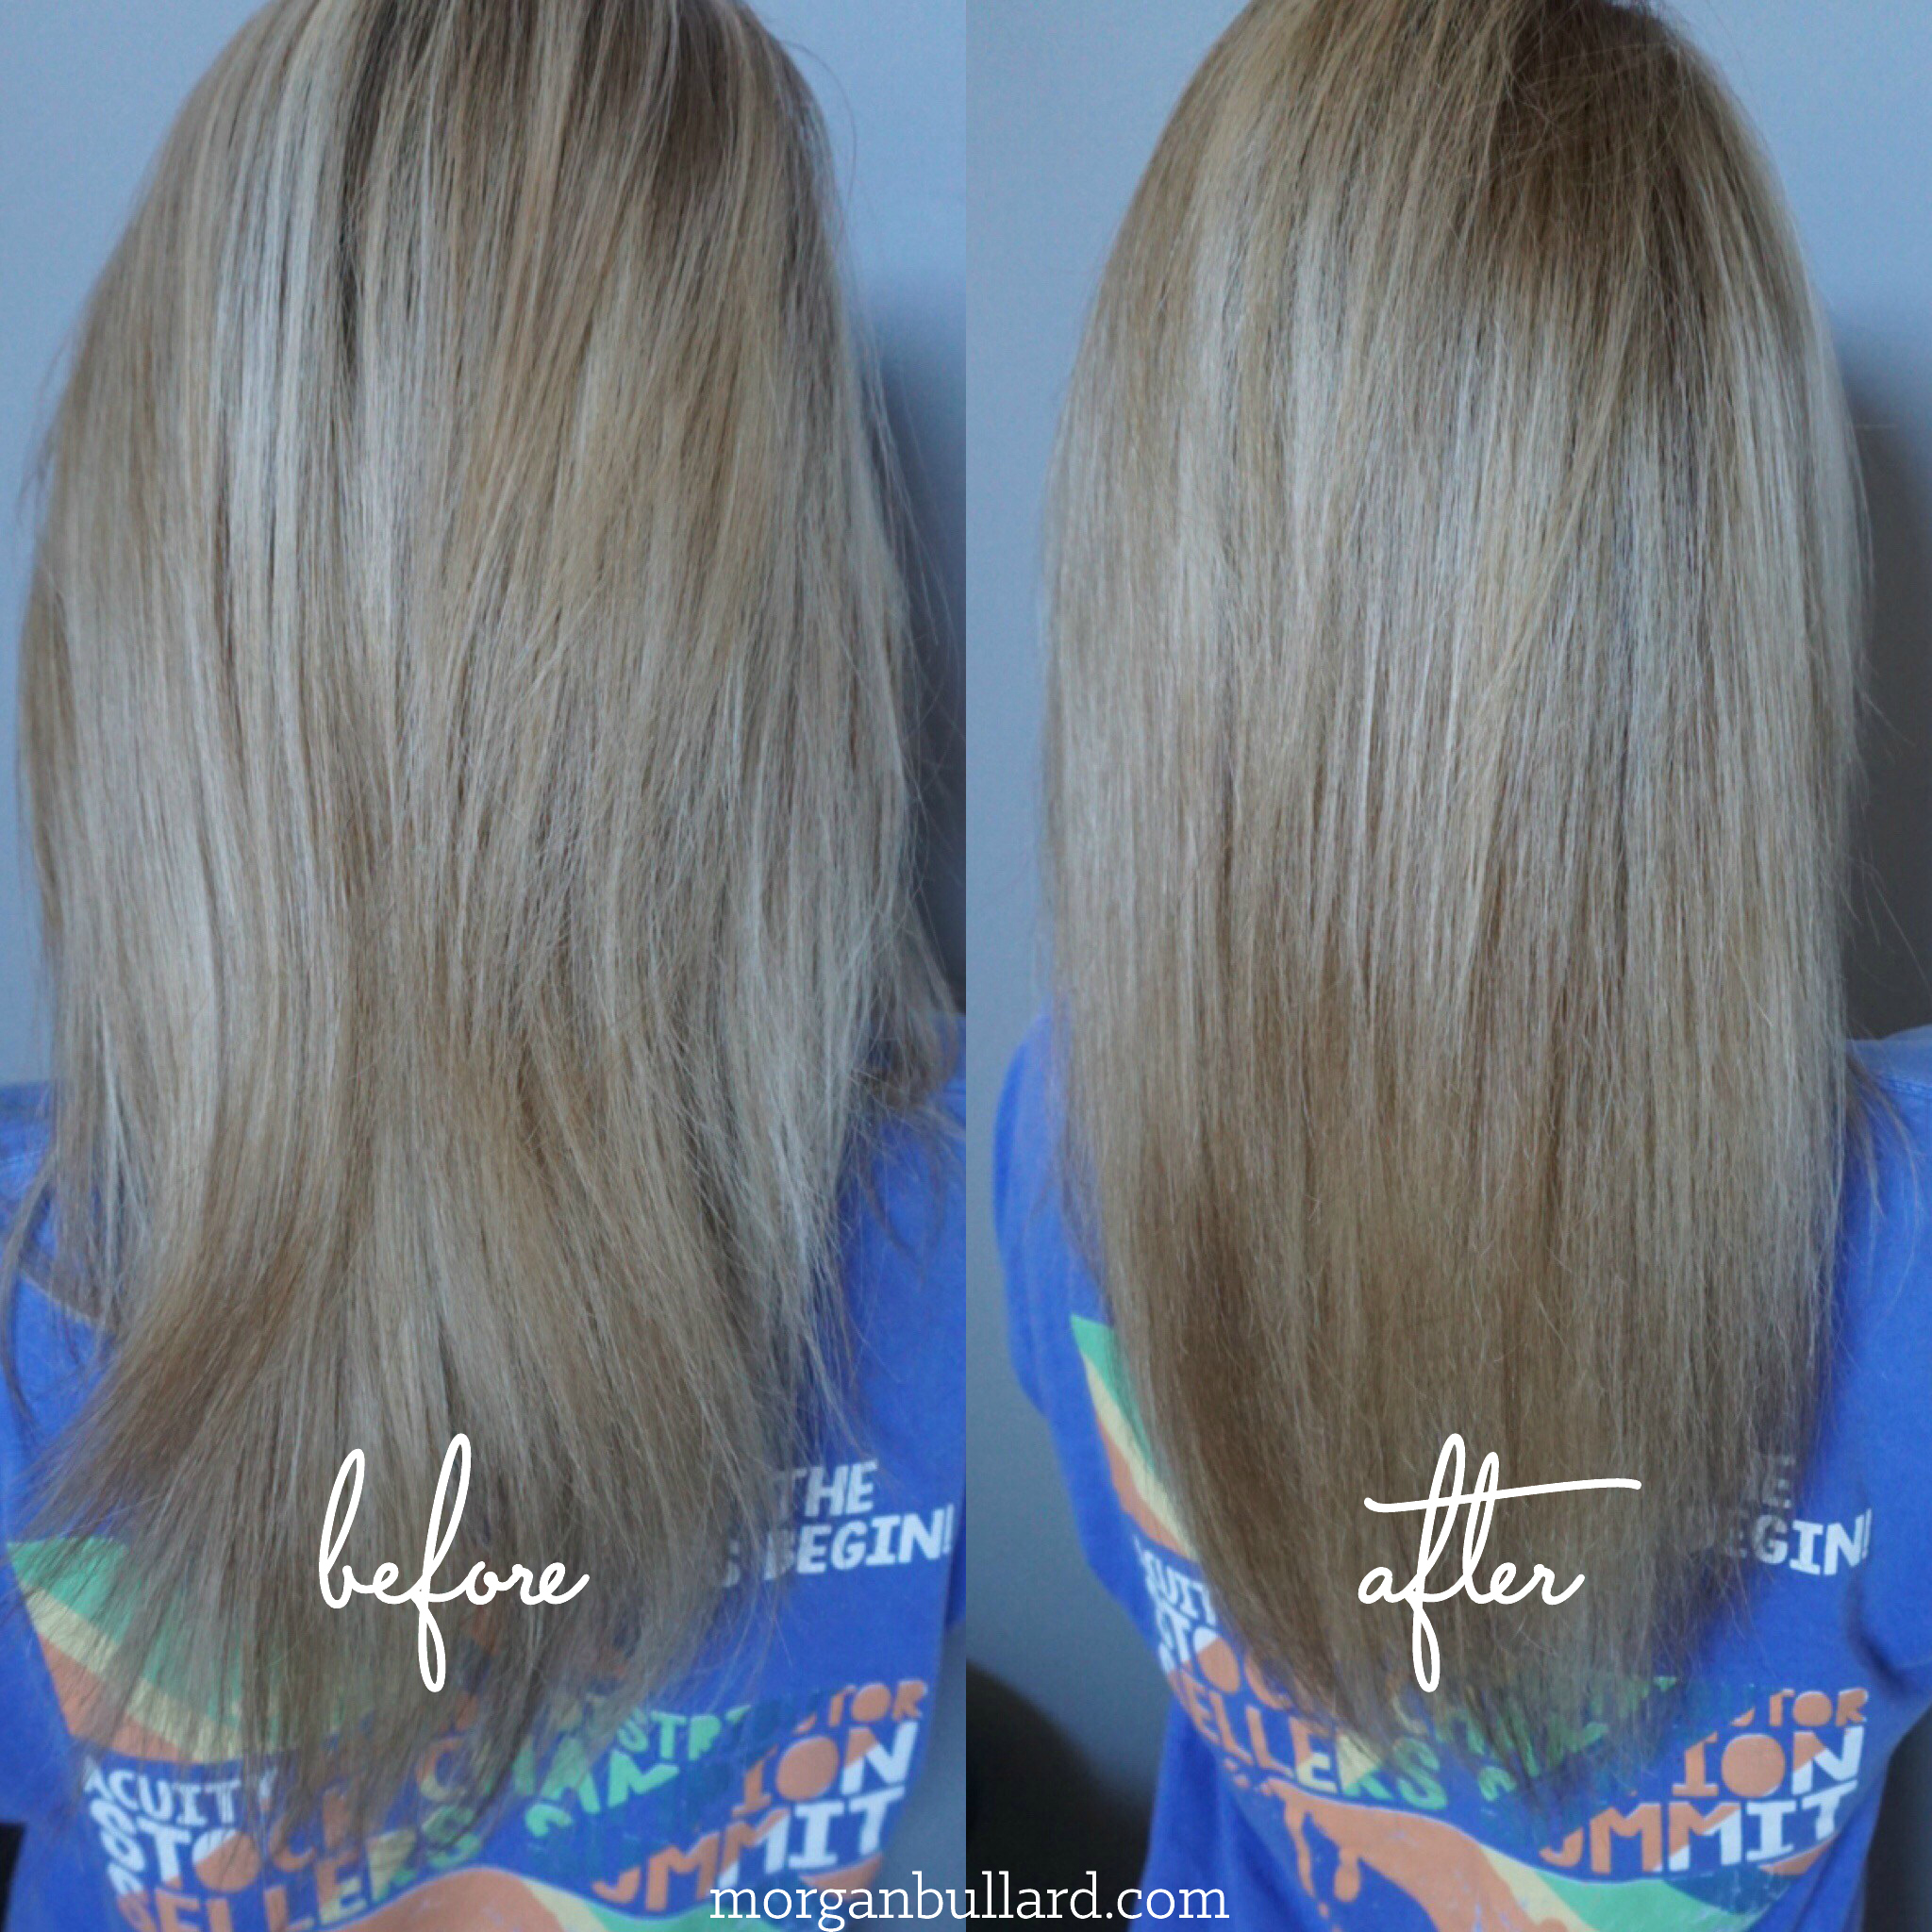 apple cider vinegar hair rinse before or after conditioner